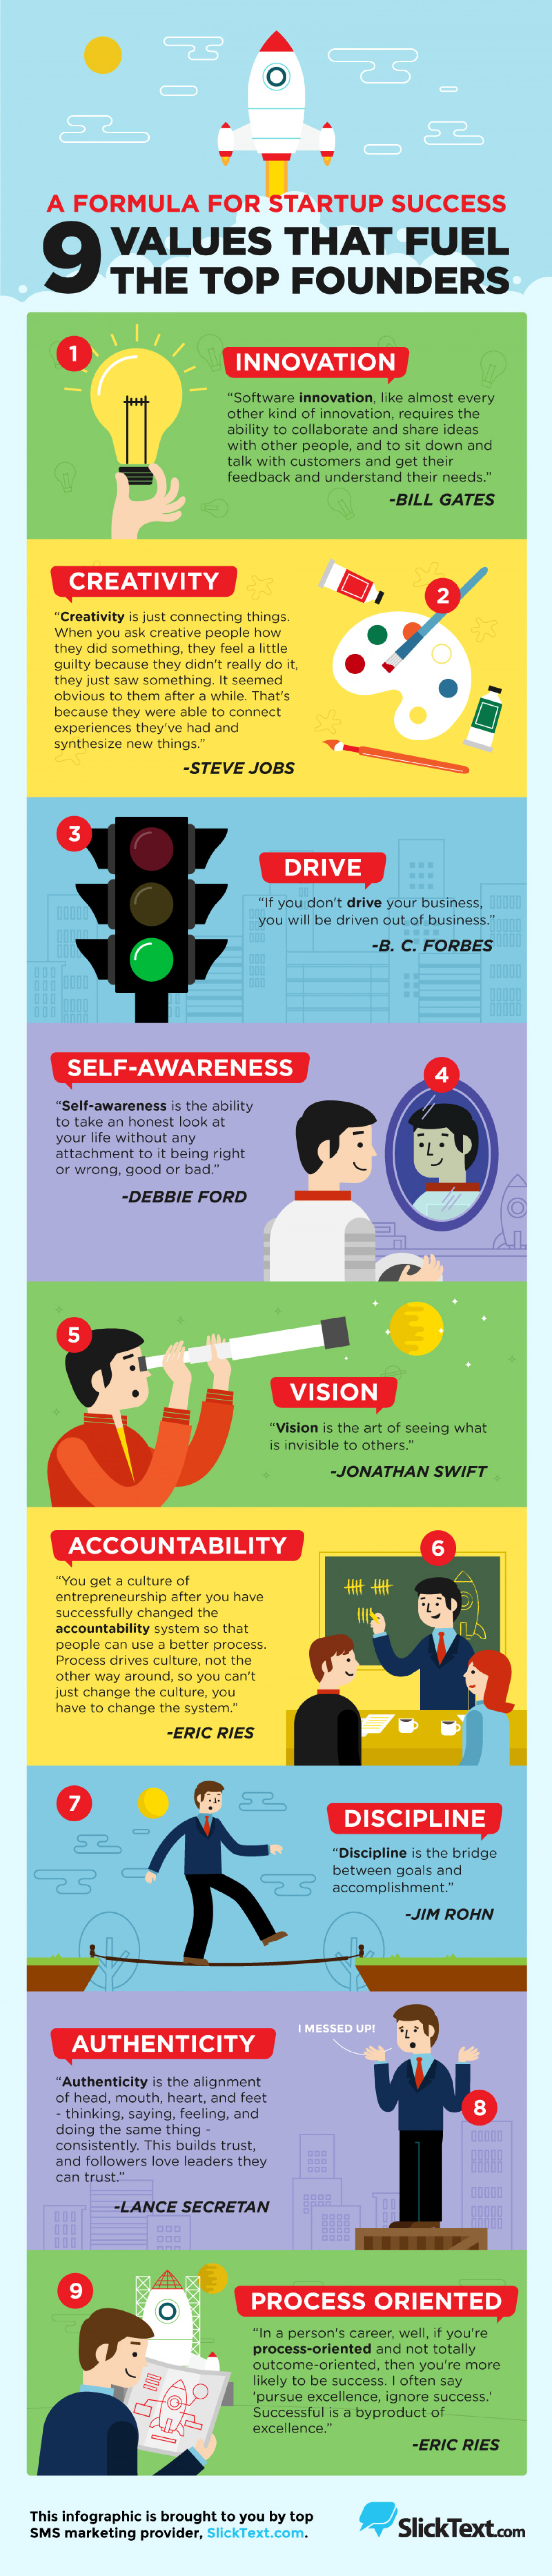 A Formula for Startup Success: 9 Values That Fuel the Top Founders Infographic